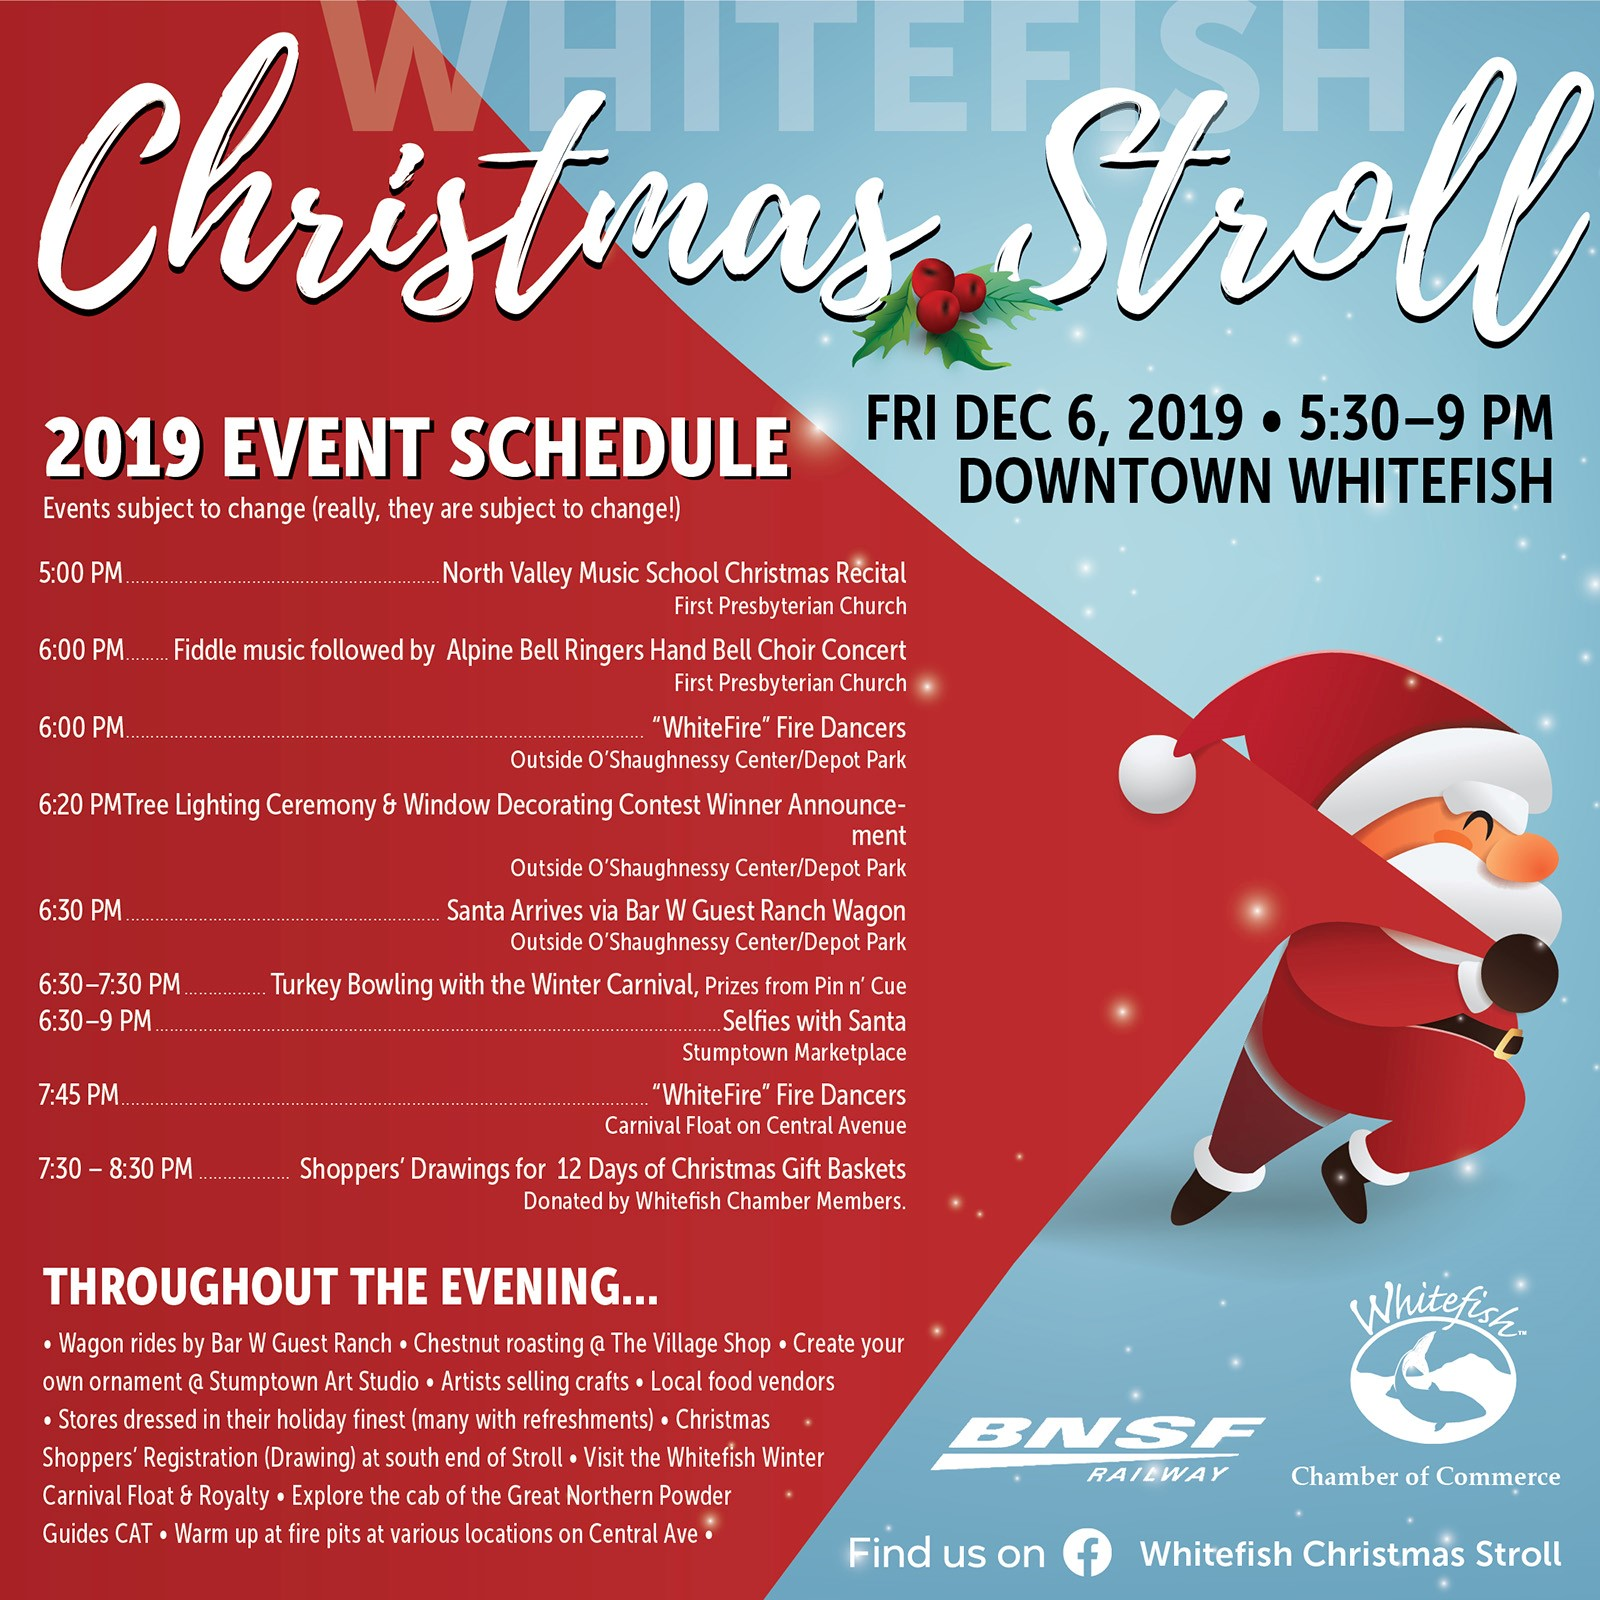 Christmas Stroll Great Falls 2020 Christmas Stroll   Whitefish Chamber of Commerce, MT